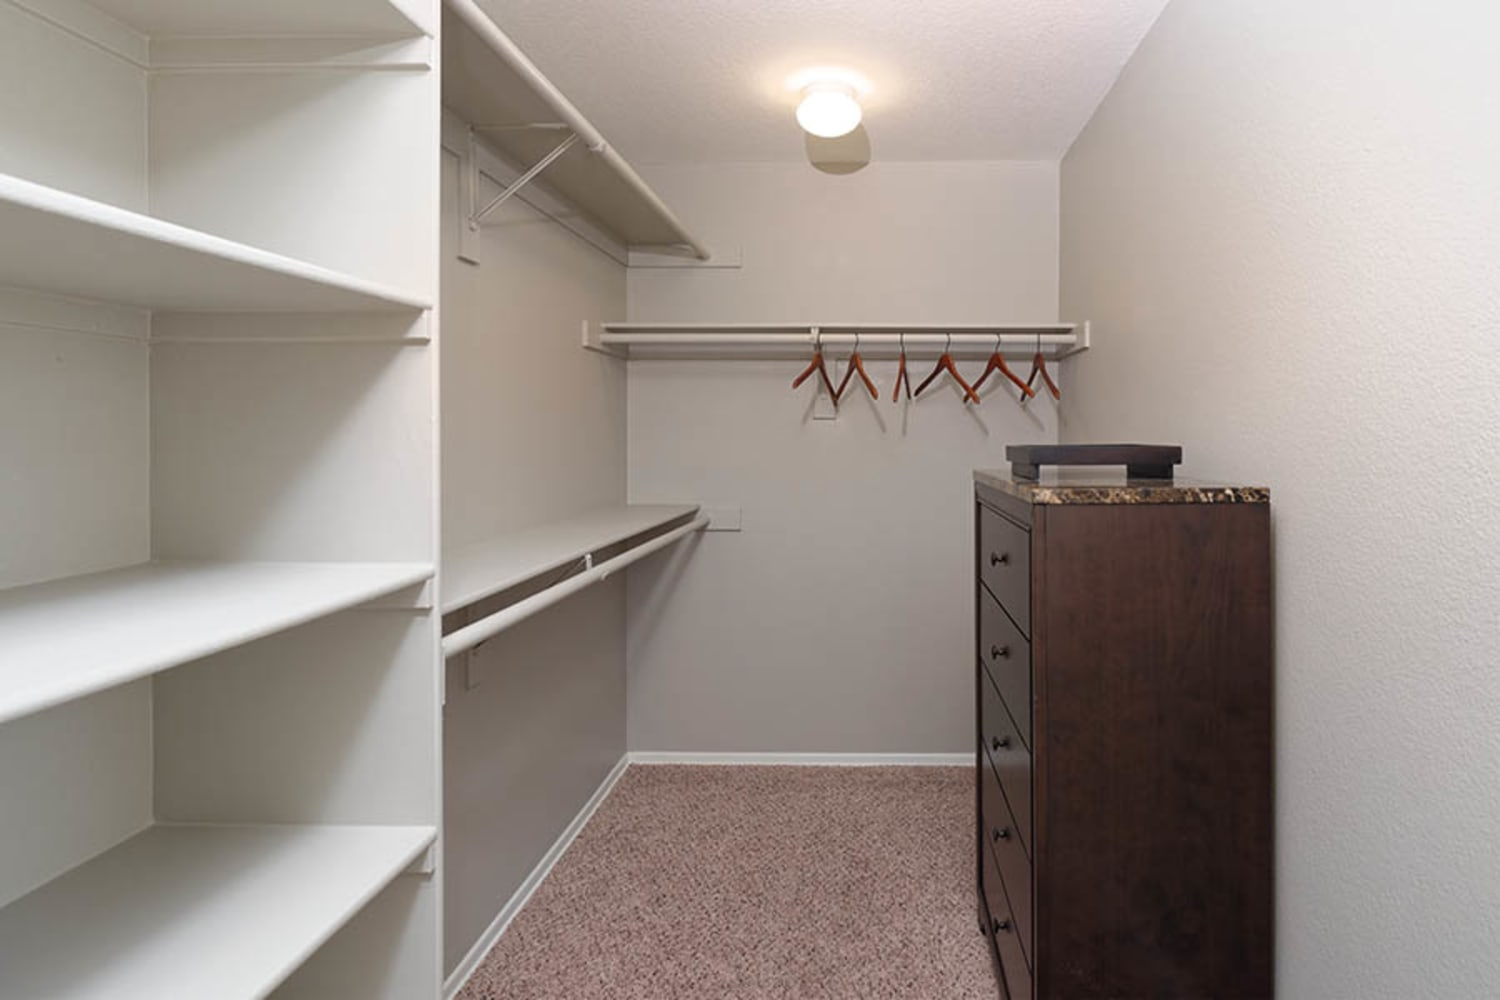 Camino Real offers apartments with walk in closets in Rancho Cucamonga, California